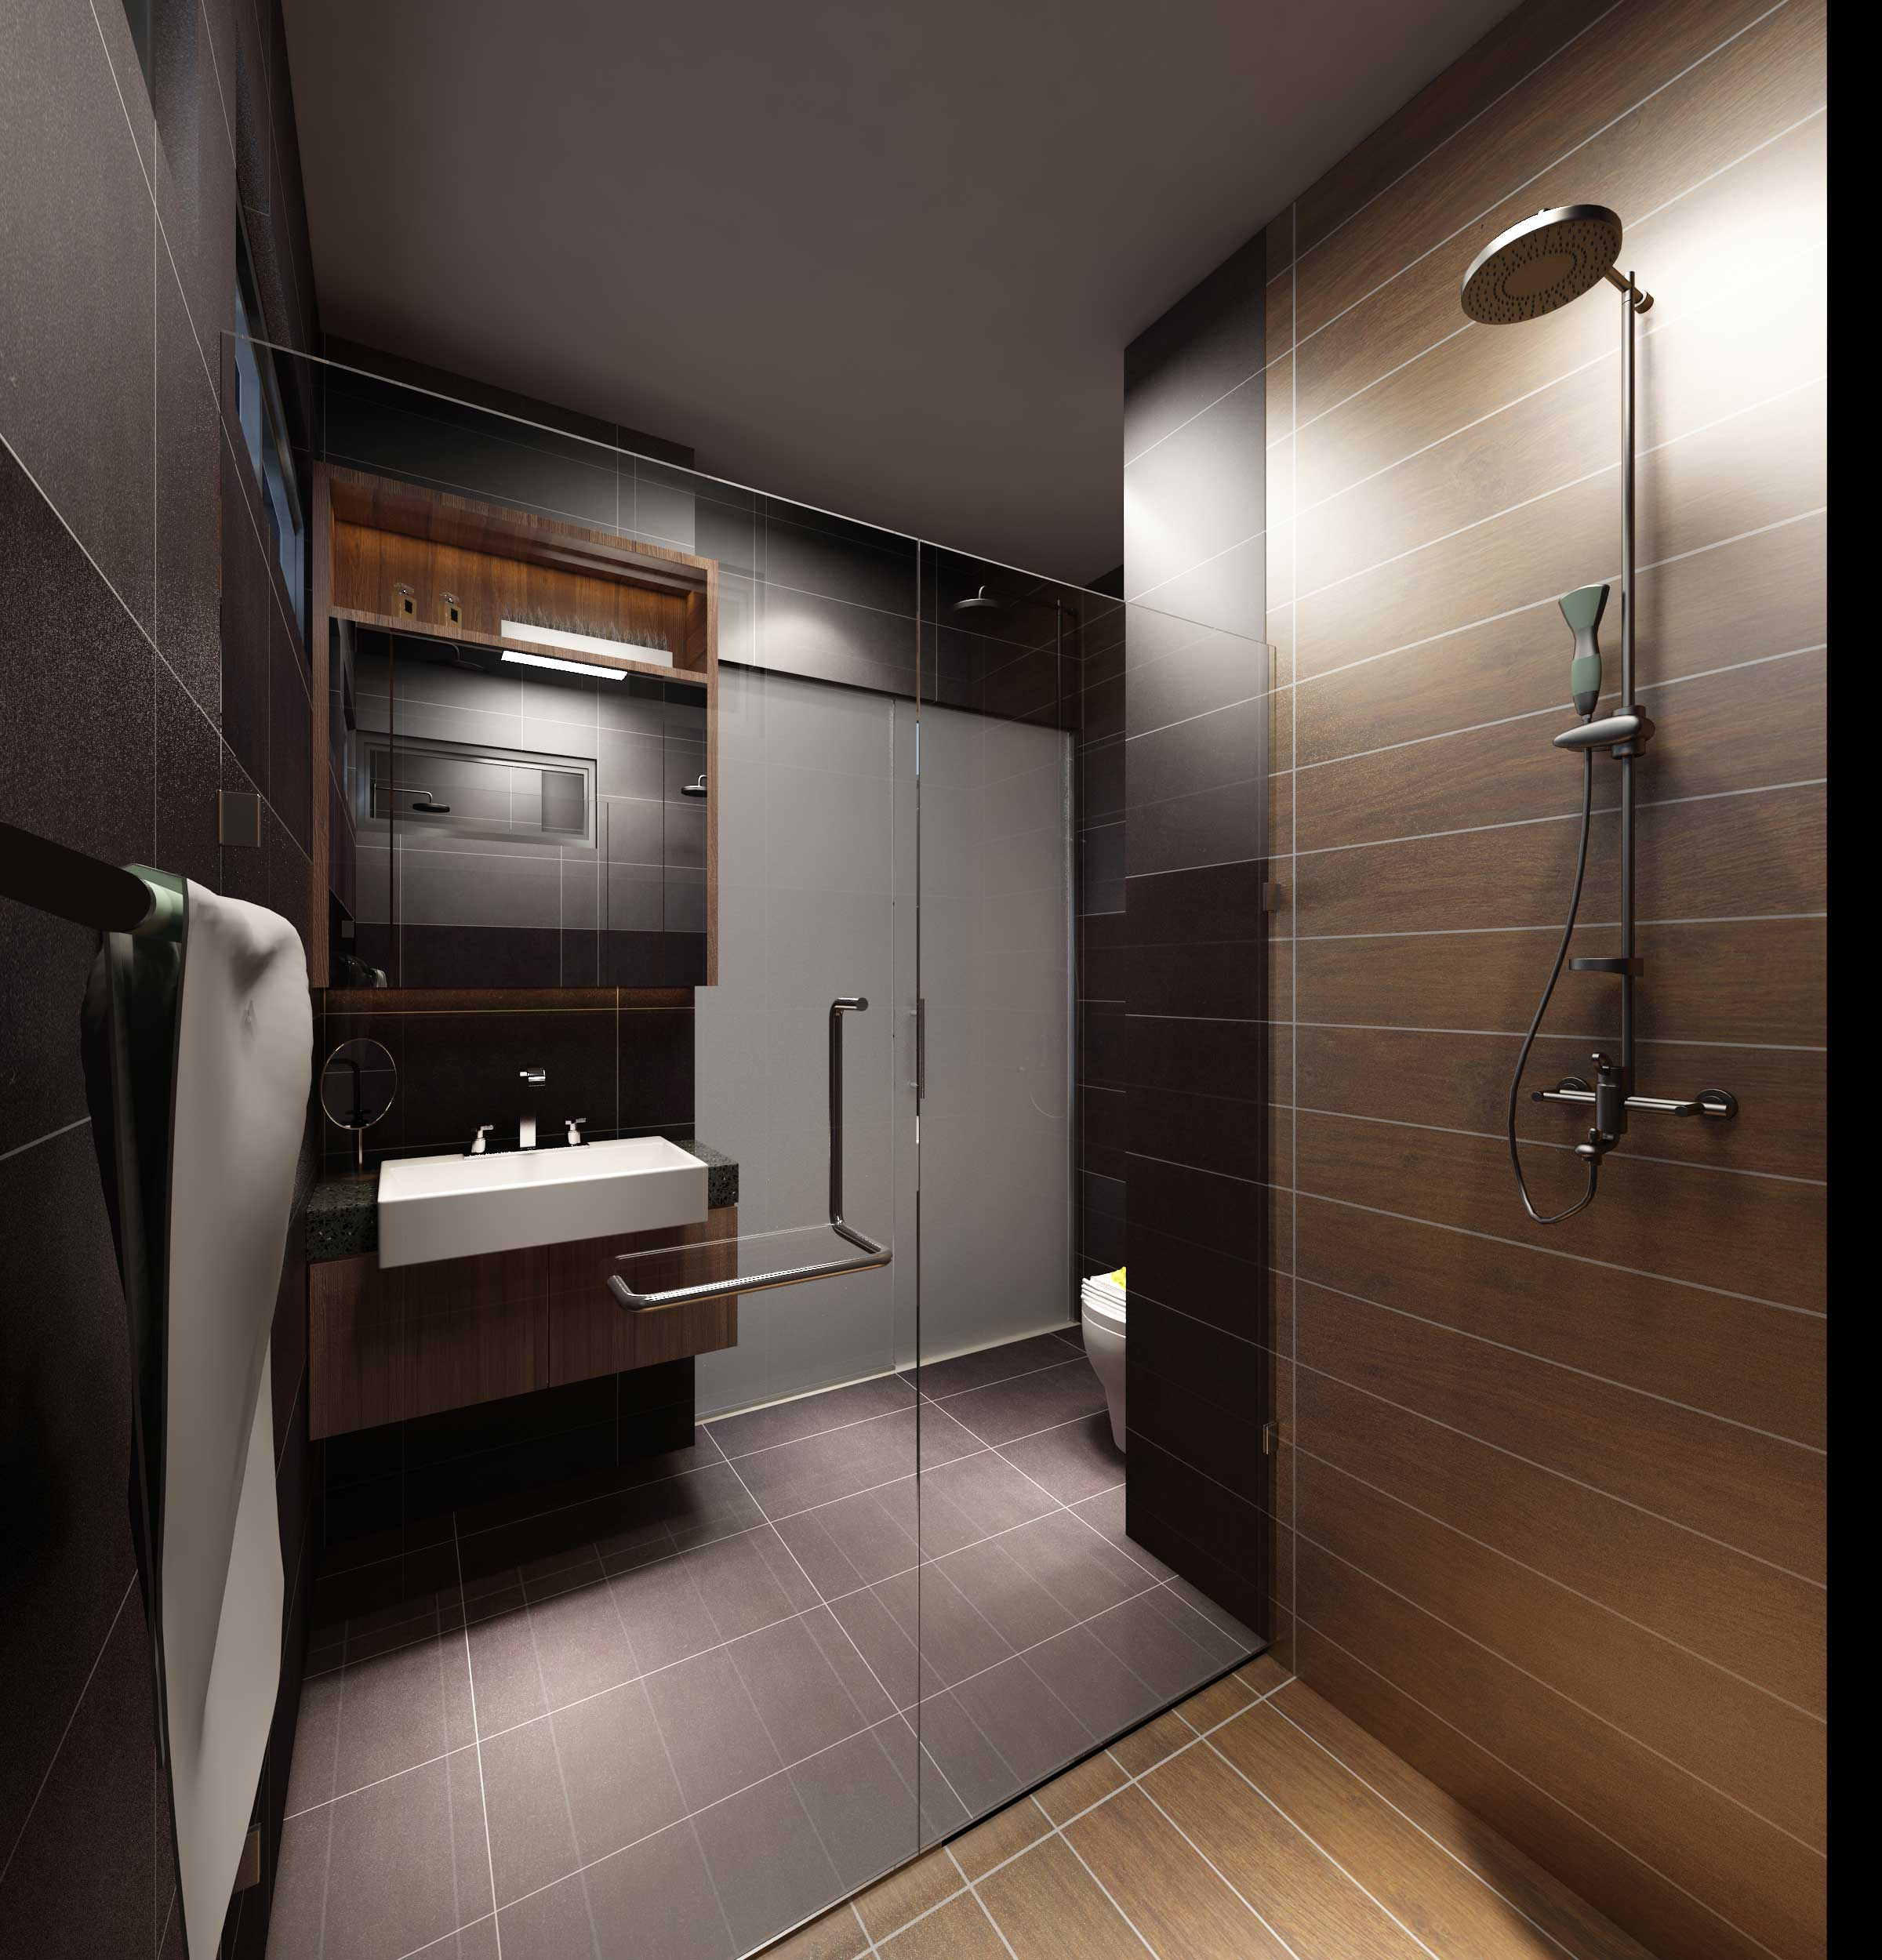 Fashion Design Interior Design Singapore: Top HDB Renovation Contractor